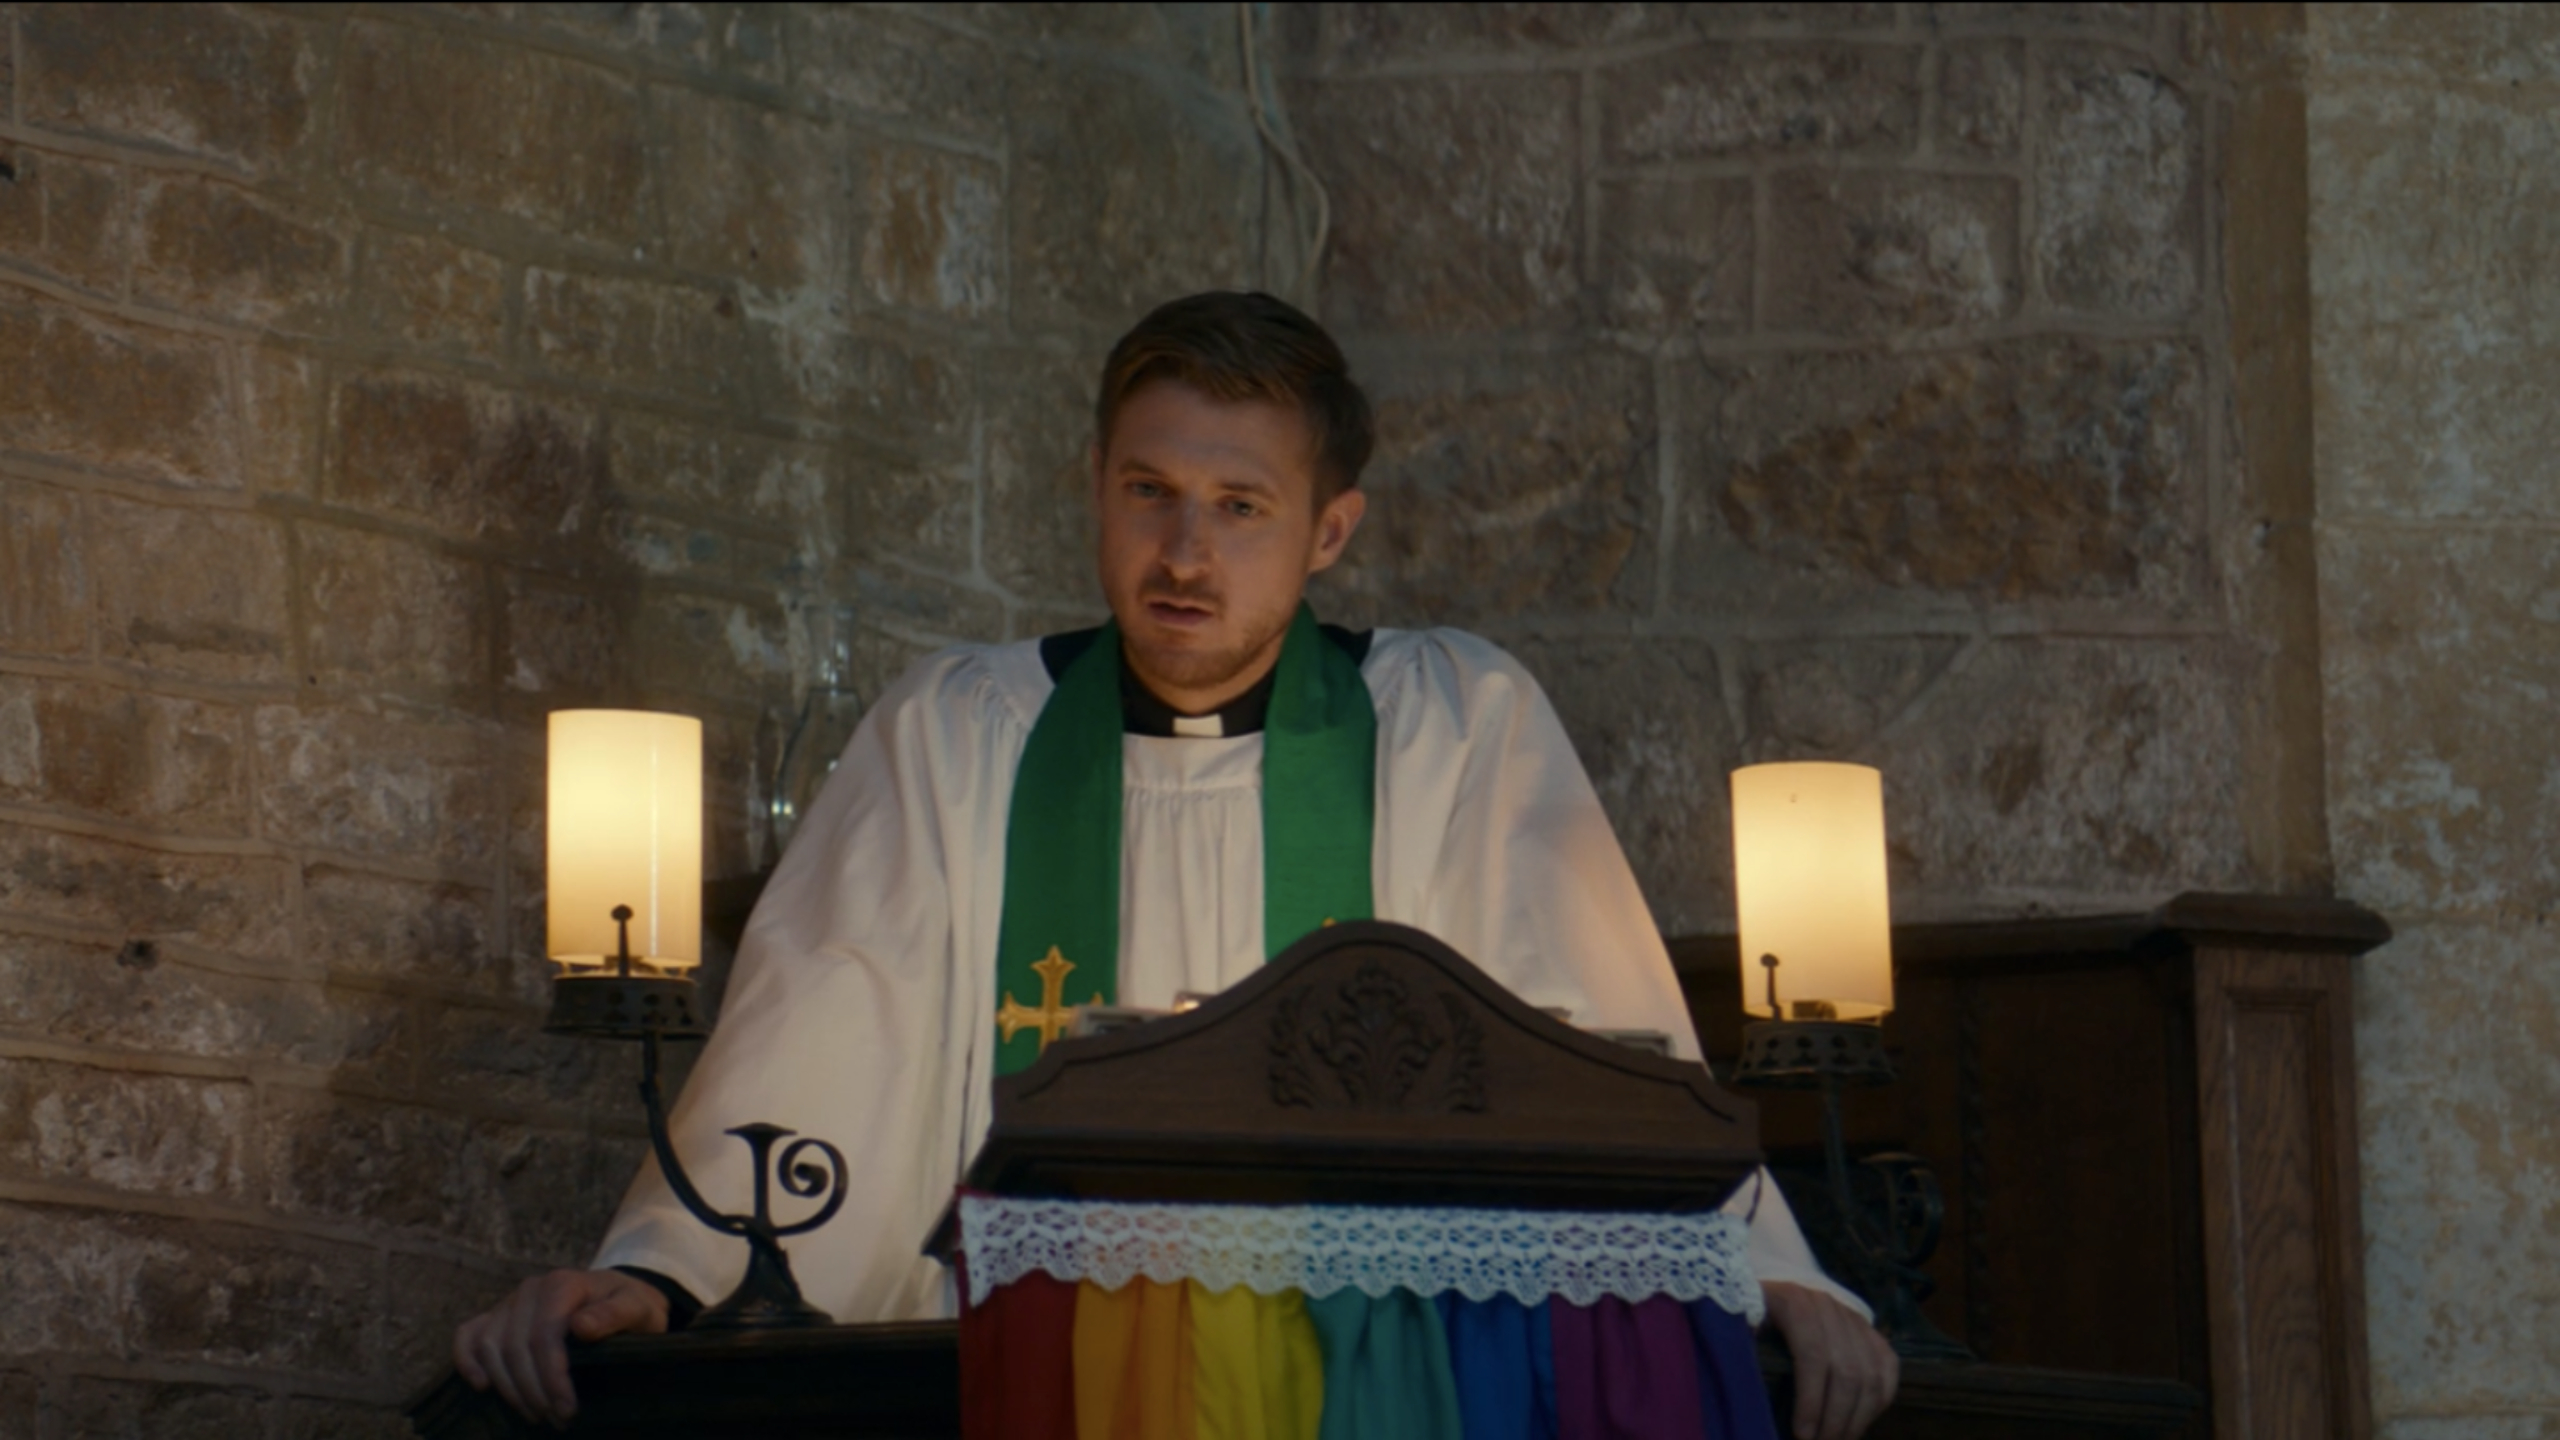 Broadchurch and the secular age: the limited value of Christianity without Christ